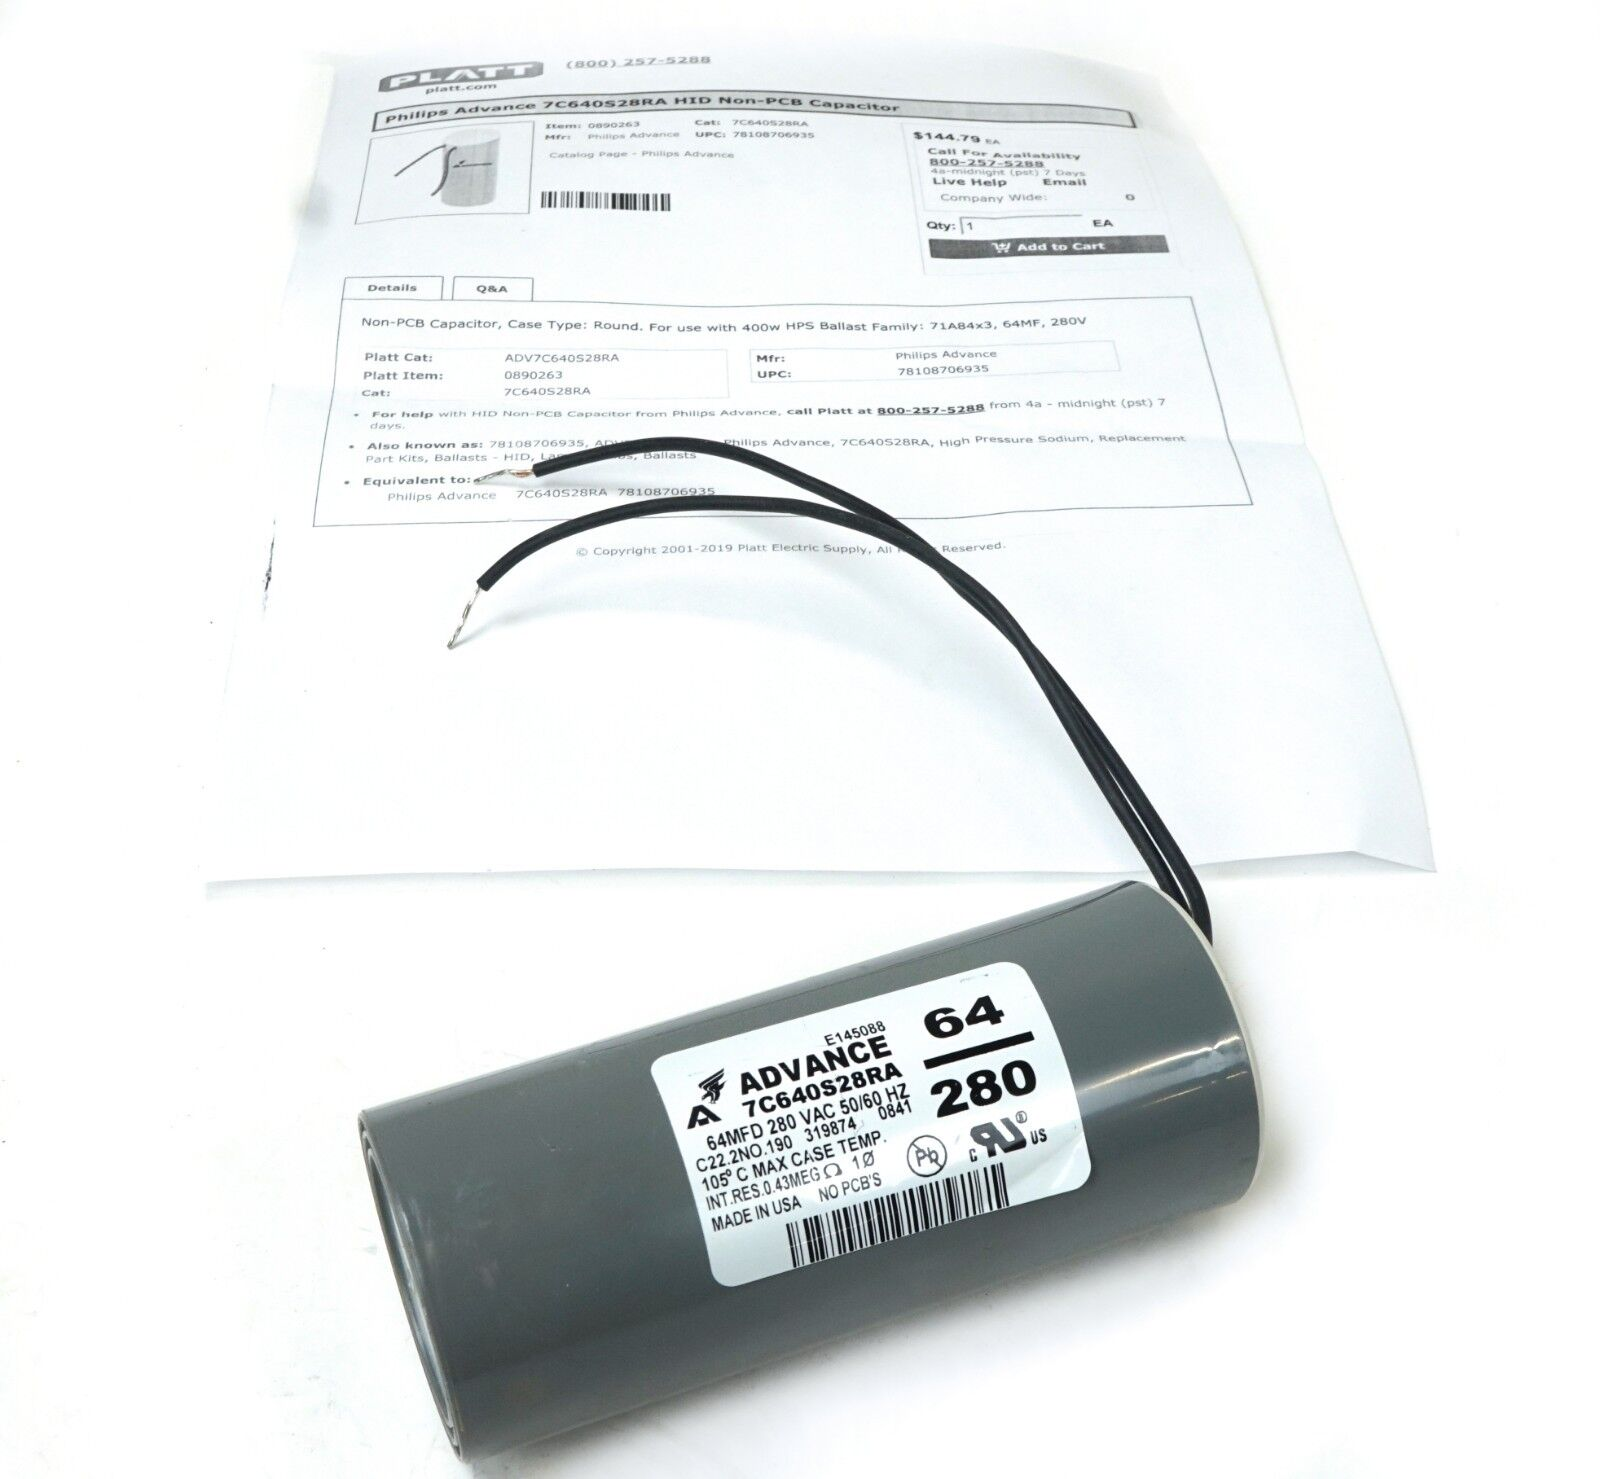 Phillips Advance Capacitor